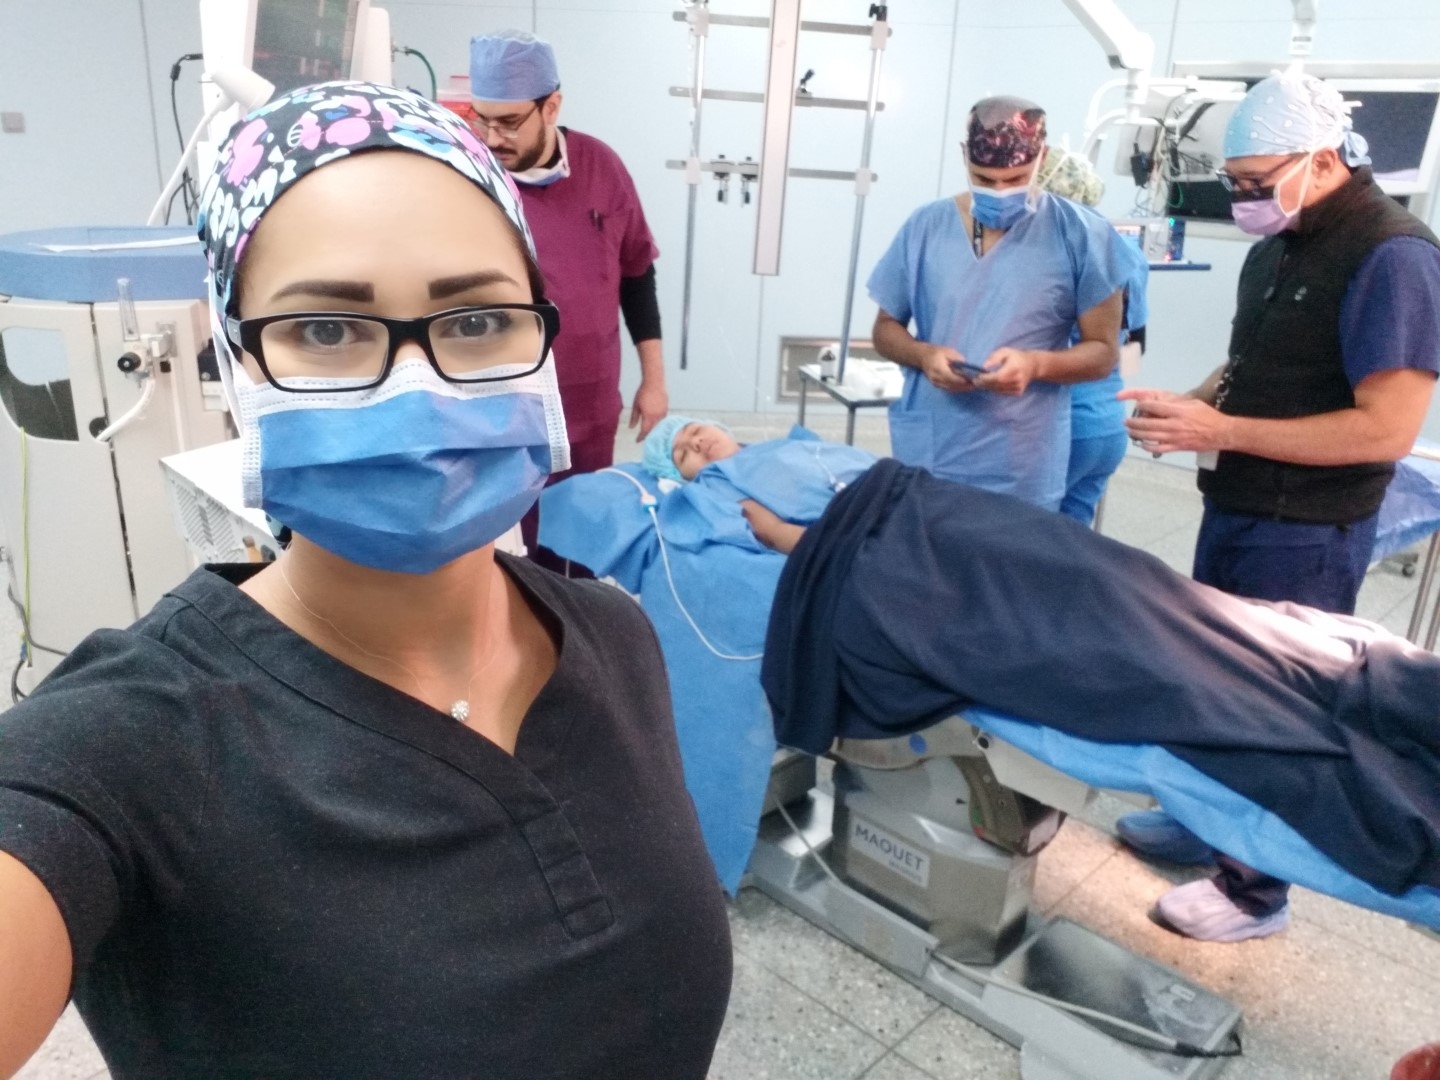 Doctors Perform Neurosurgery in Venezuela While Most